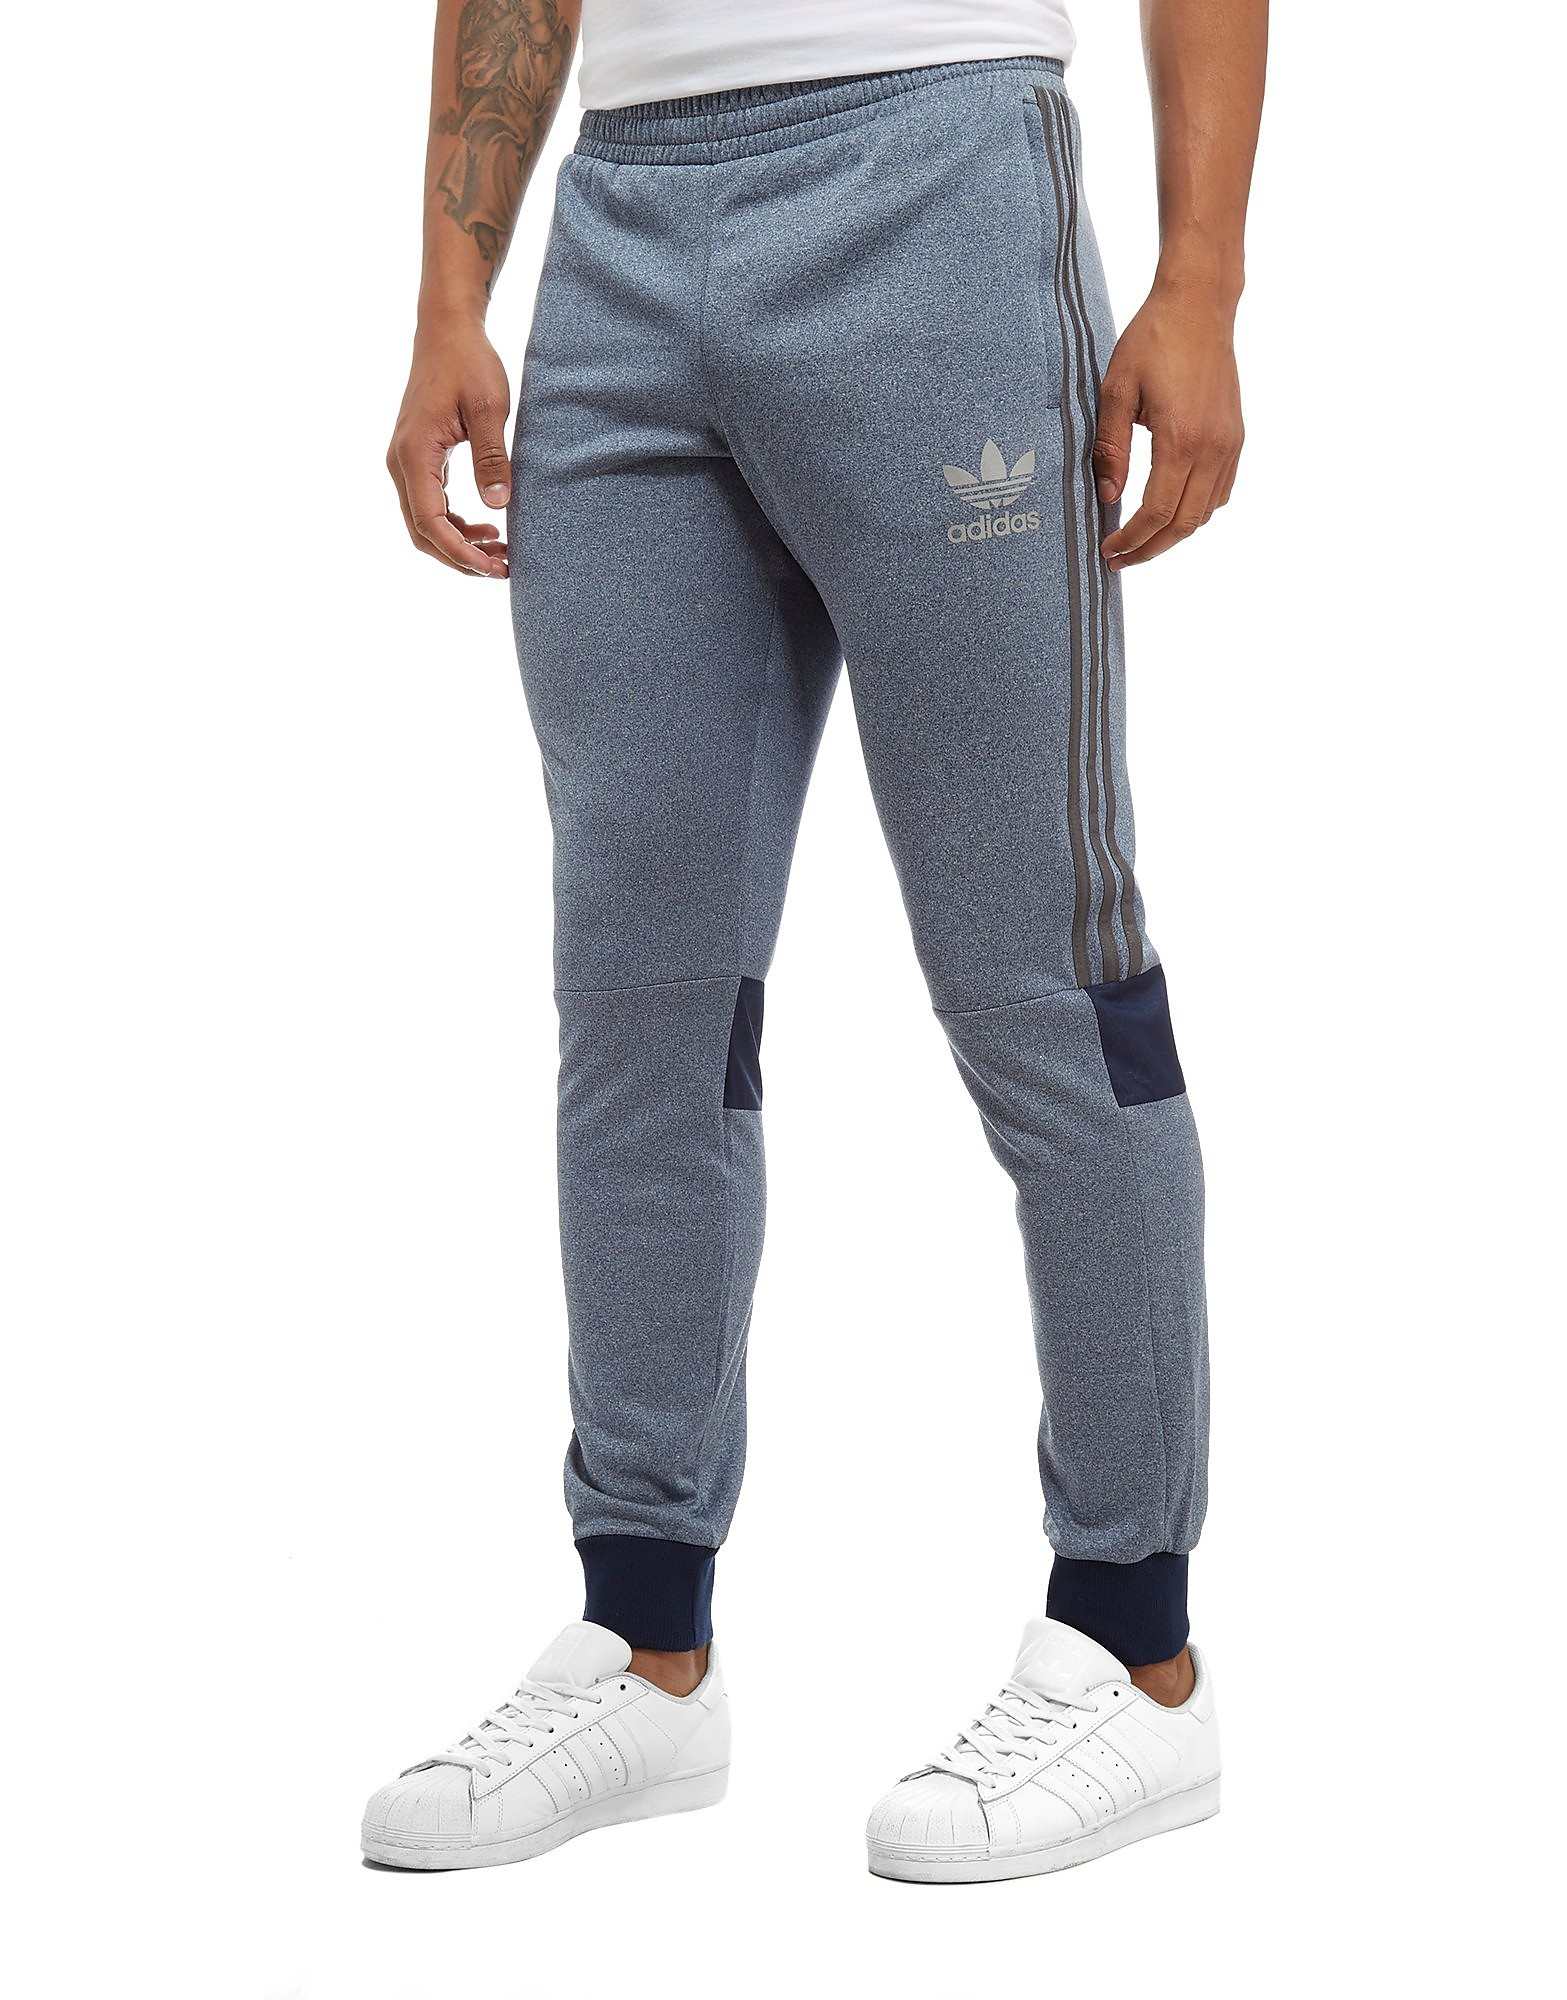 adidas Originals NMD Pants